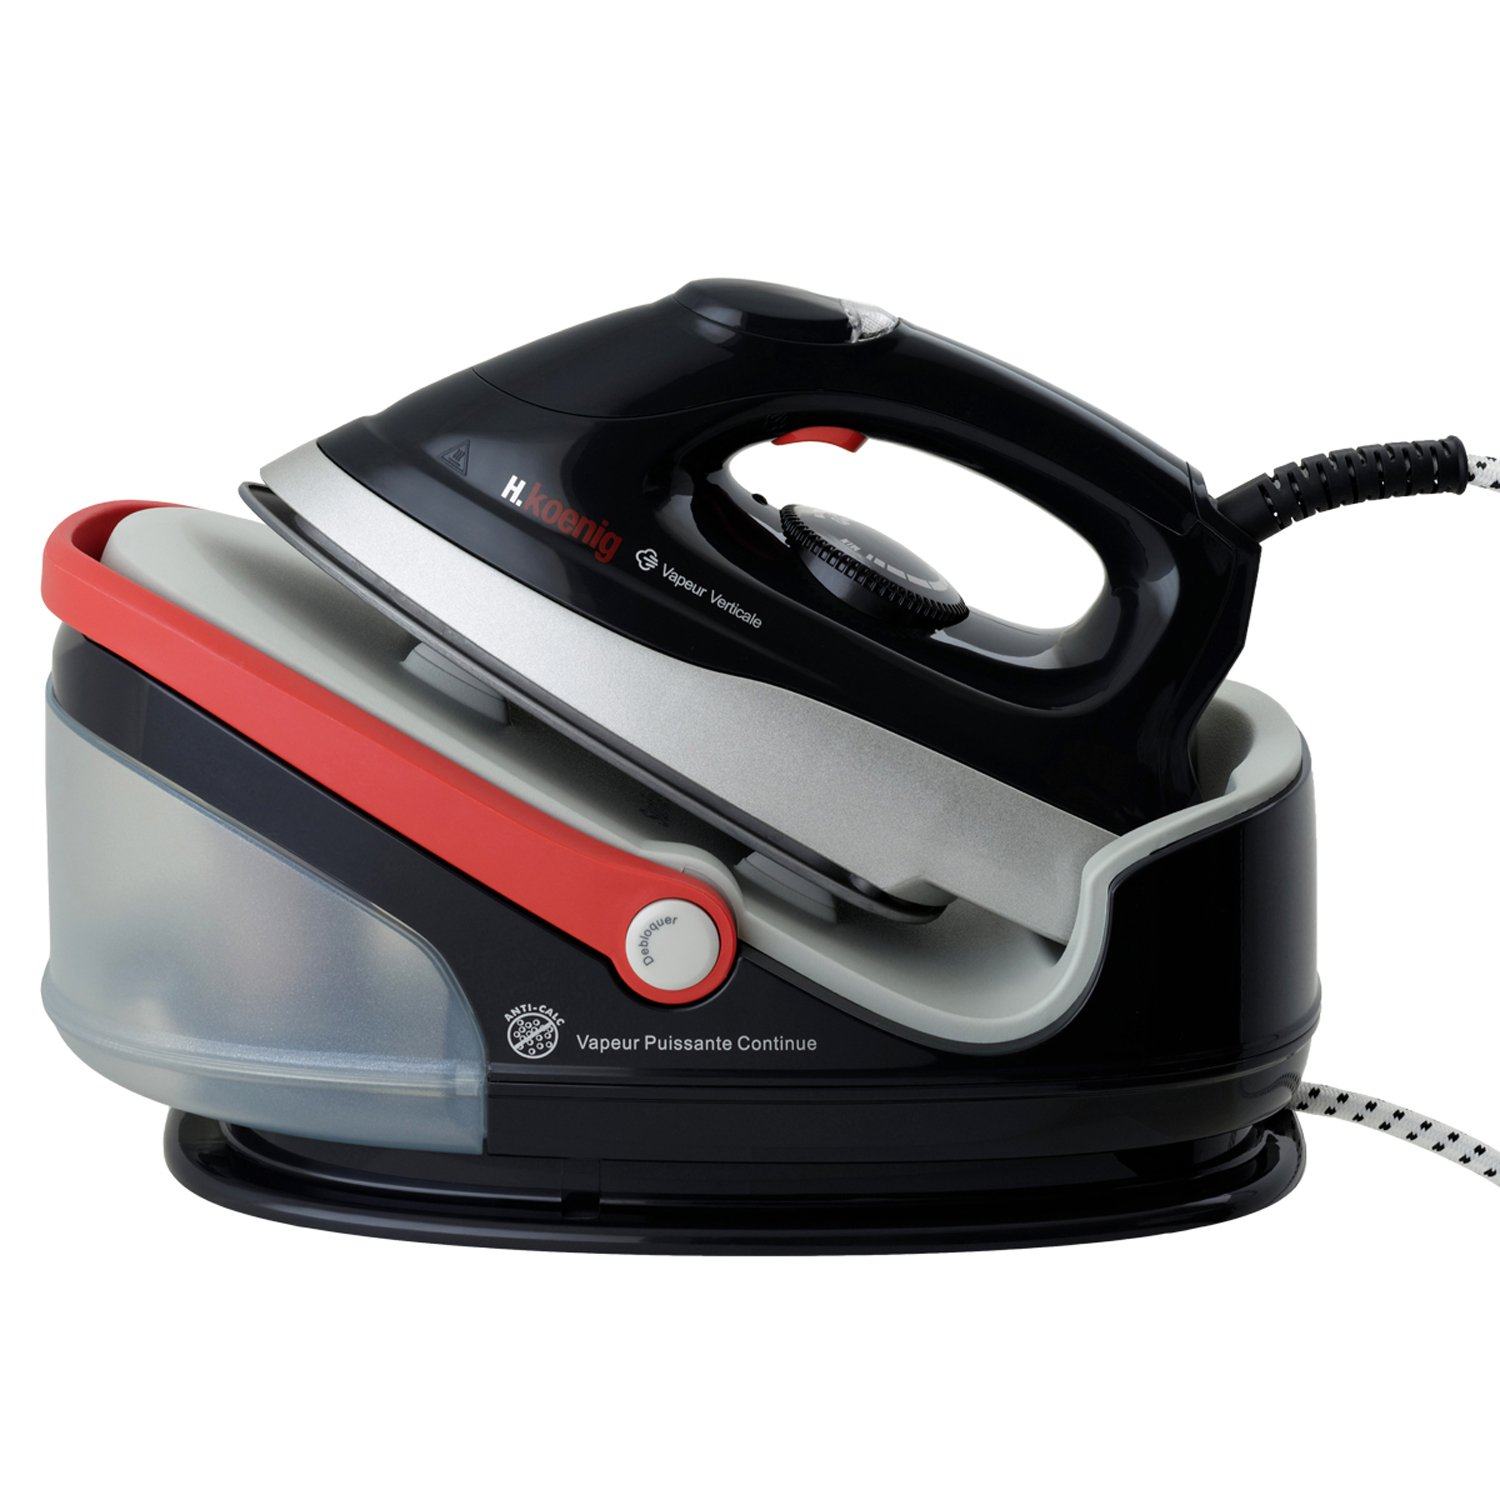 H.Koenig V85 Steam Generator Iron Ceramic Soleplate, 1.7 Litre, 2400 W, 3.5 Bar, Black